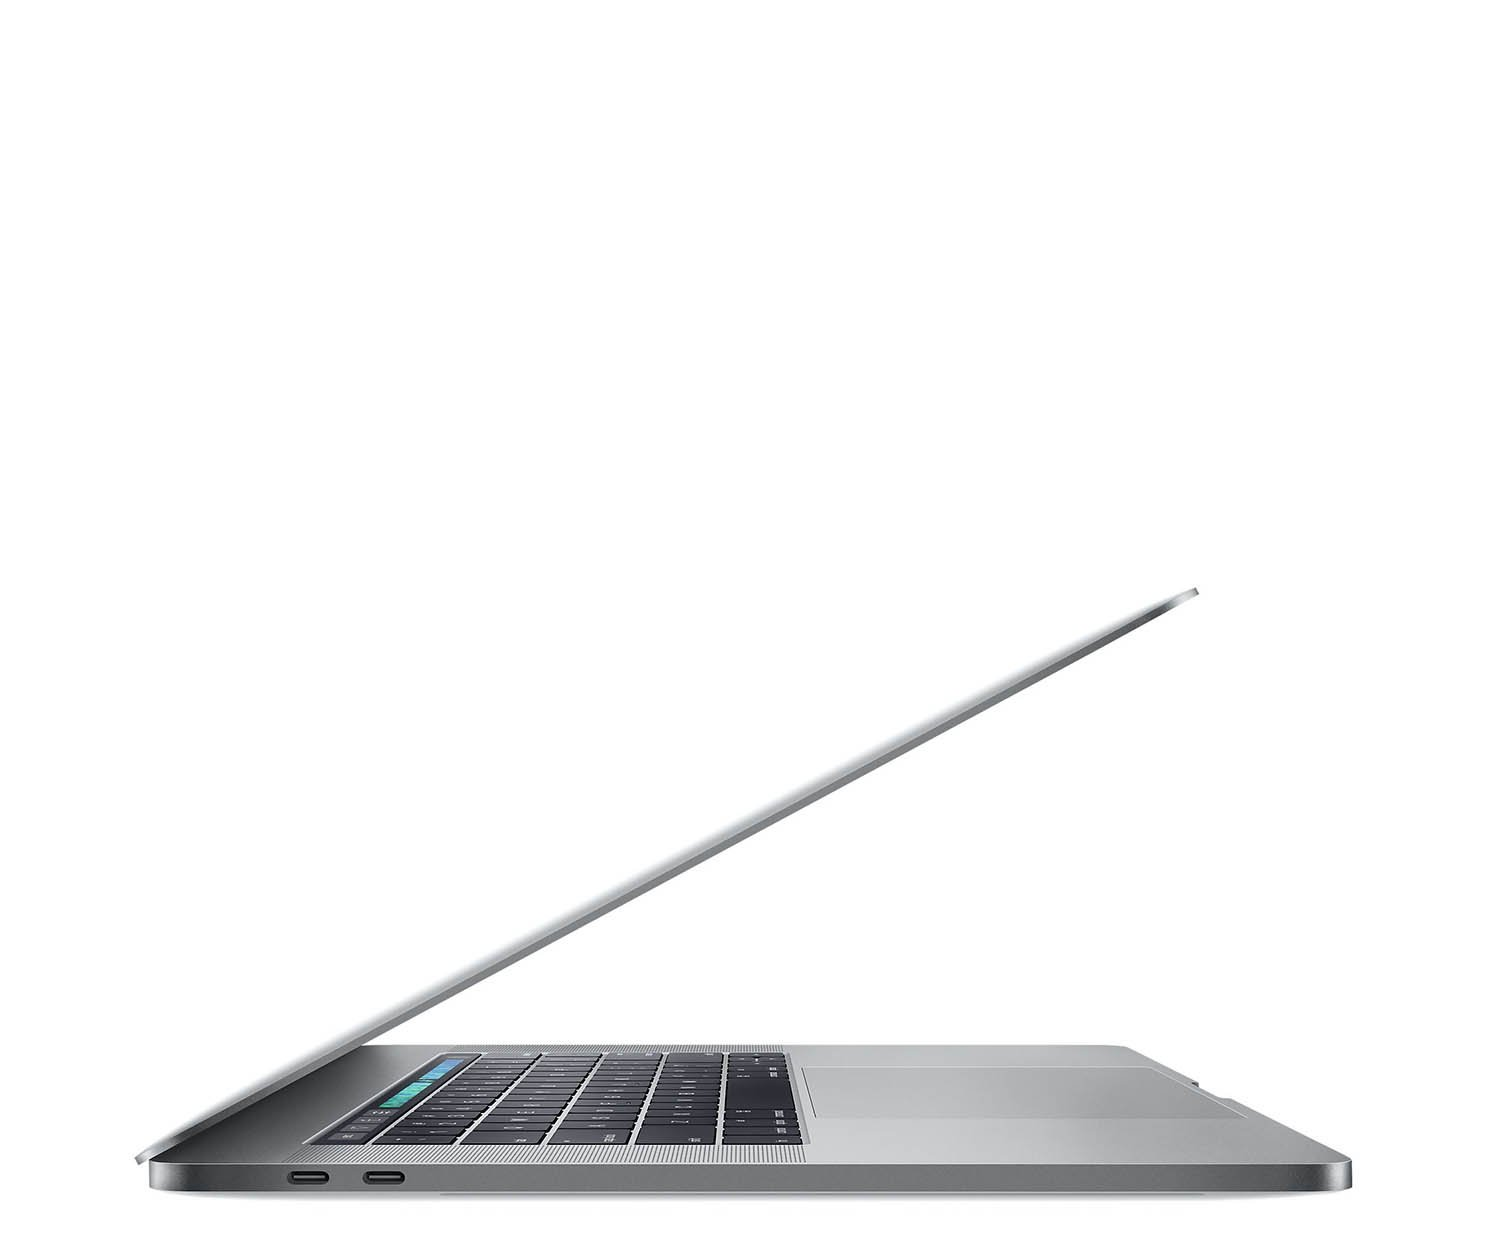 macbook pro 15 mit touch bar 2 6 ghz core i7 512 gb ssd. Black Bedroom Furniture Sets. Home Design Ideas